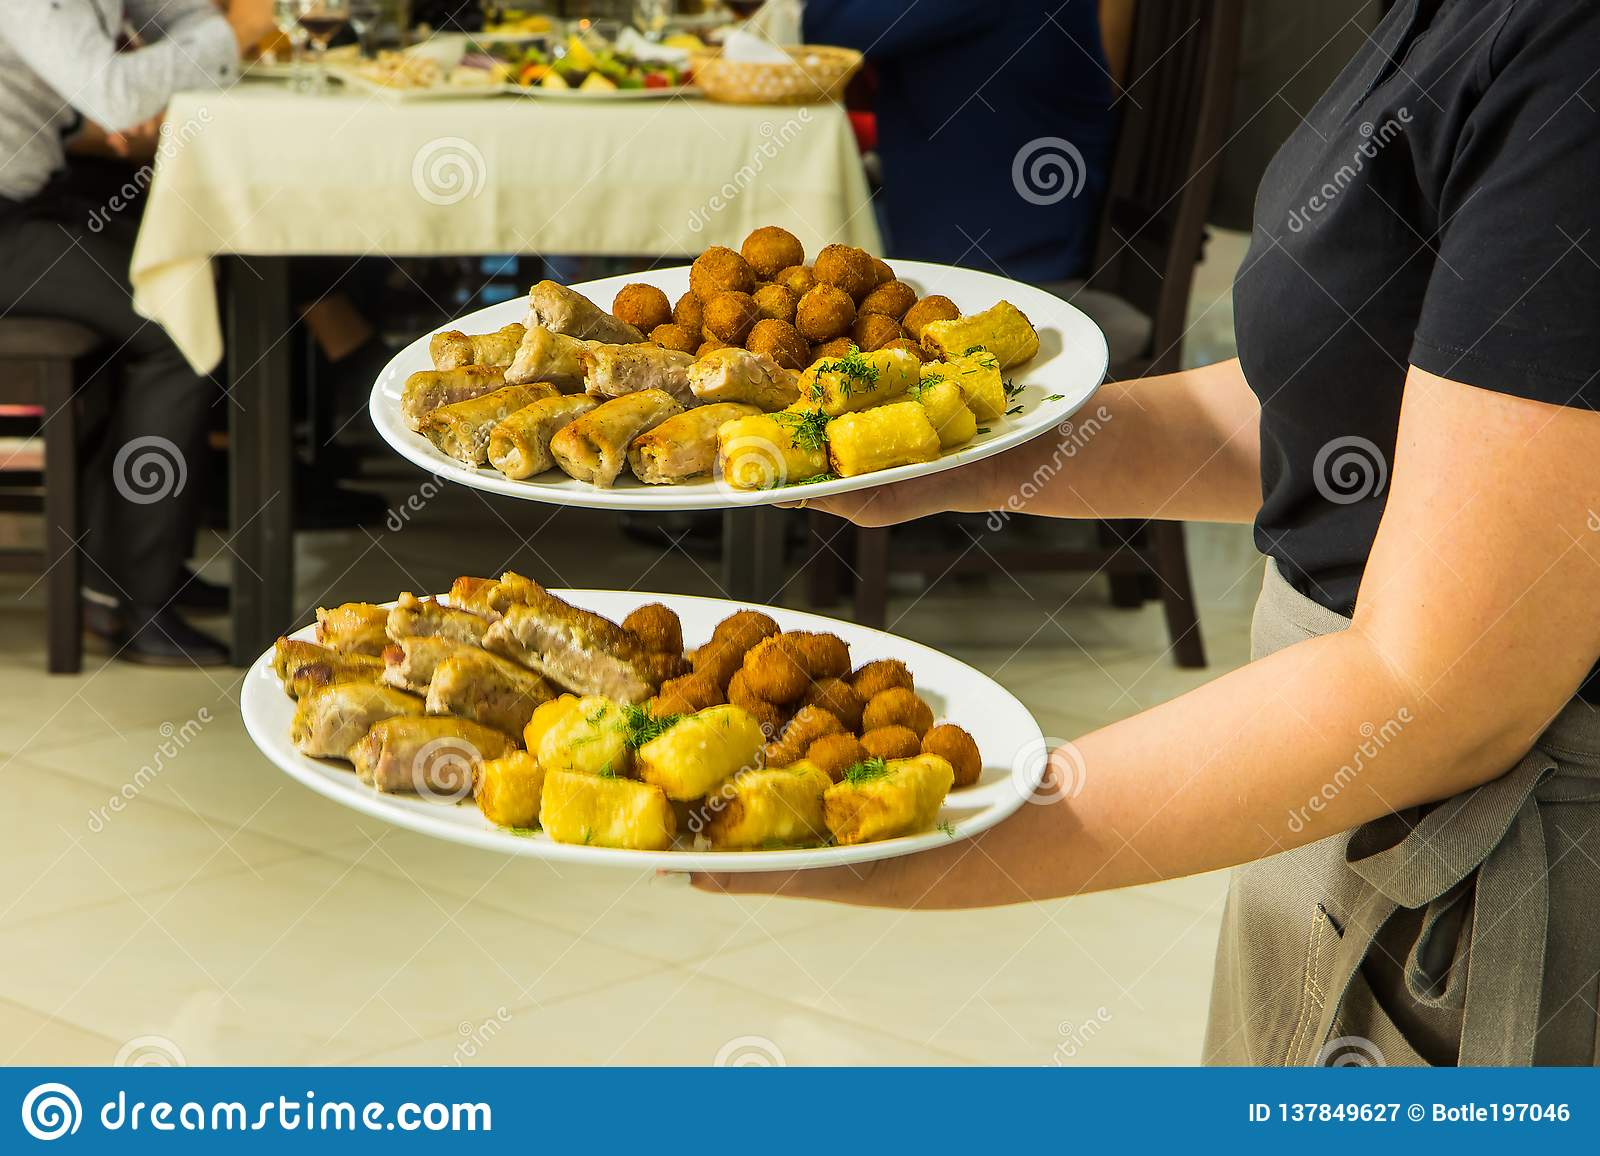 Waitress with food dish serving banquet table